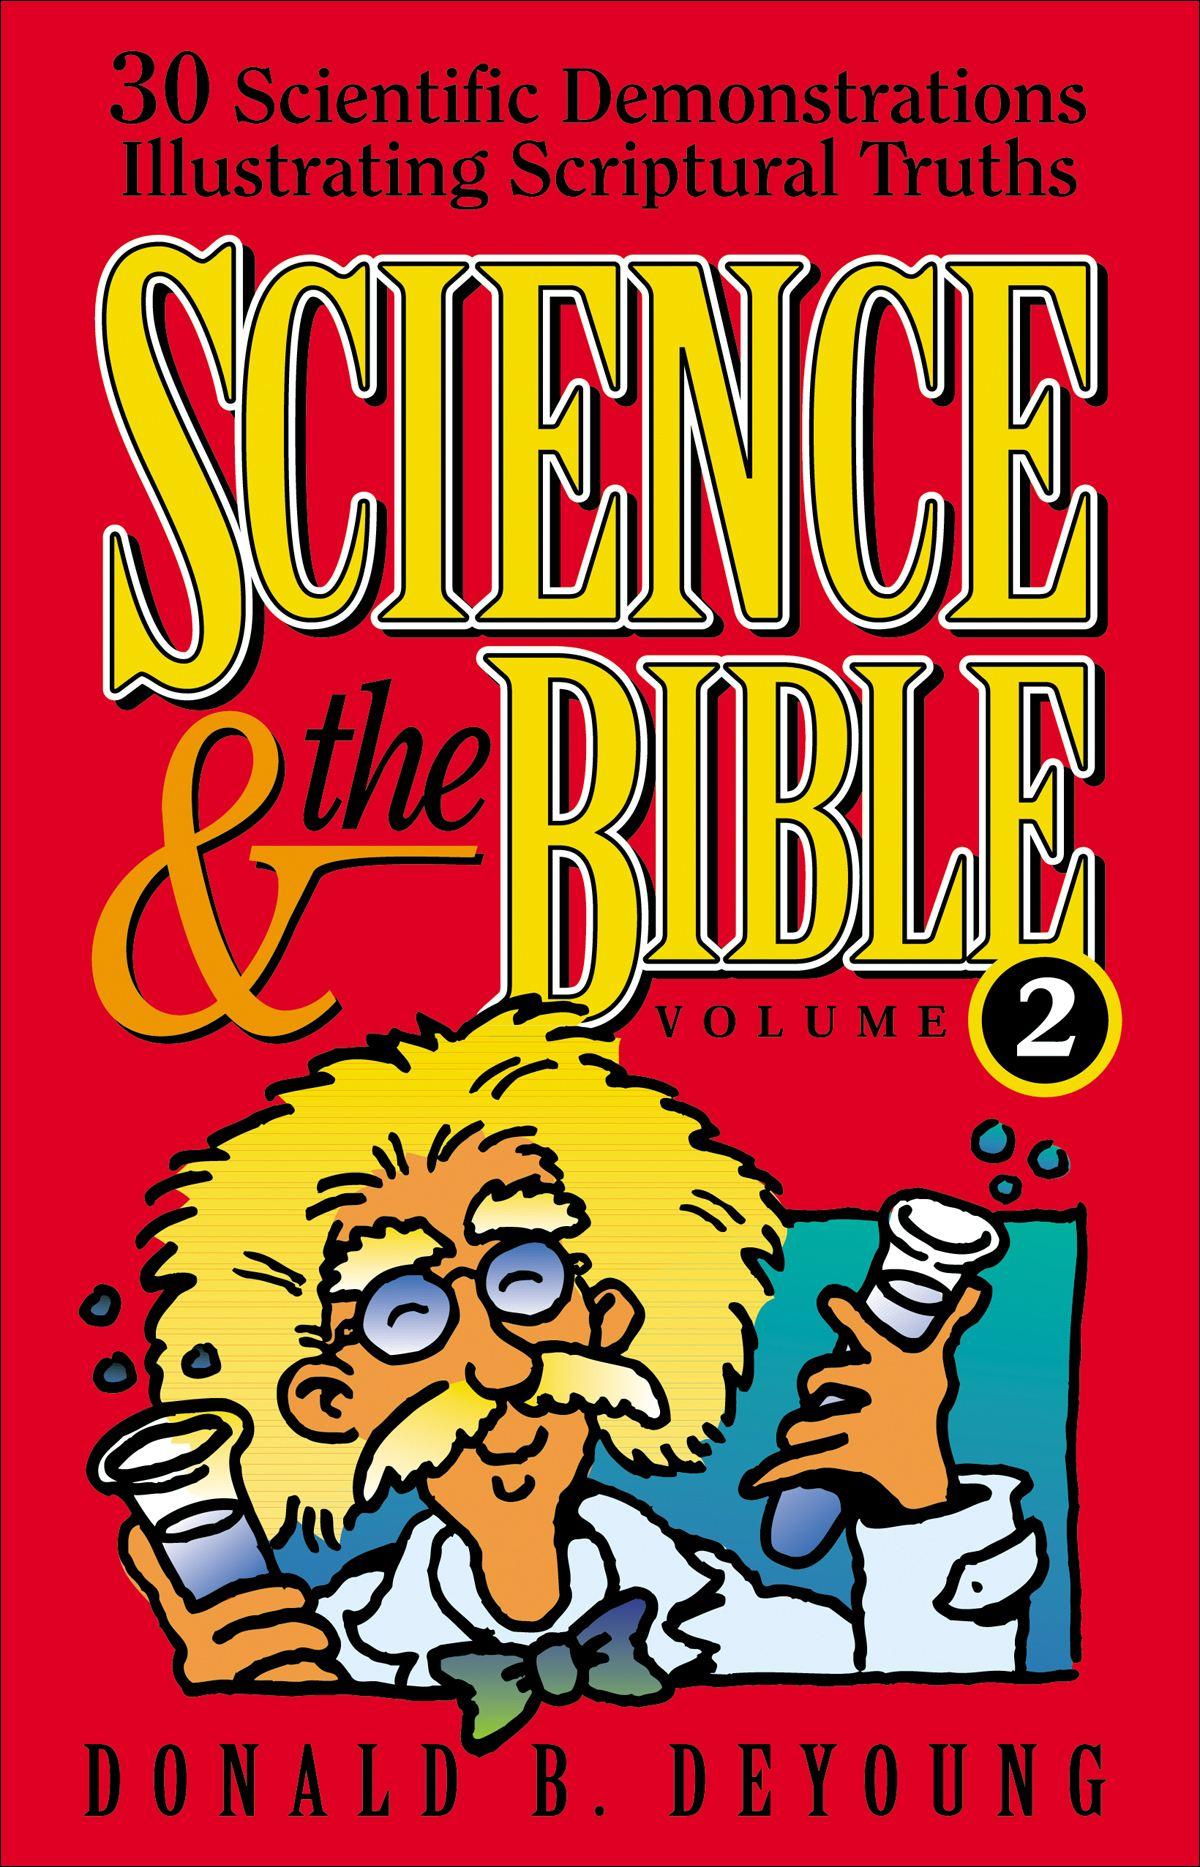 Science and the Bible : Volume 2